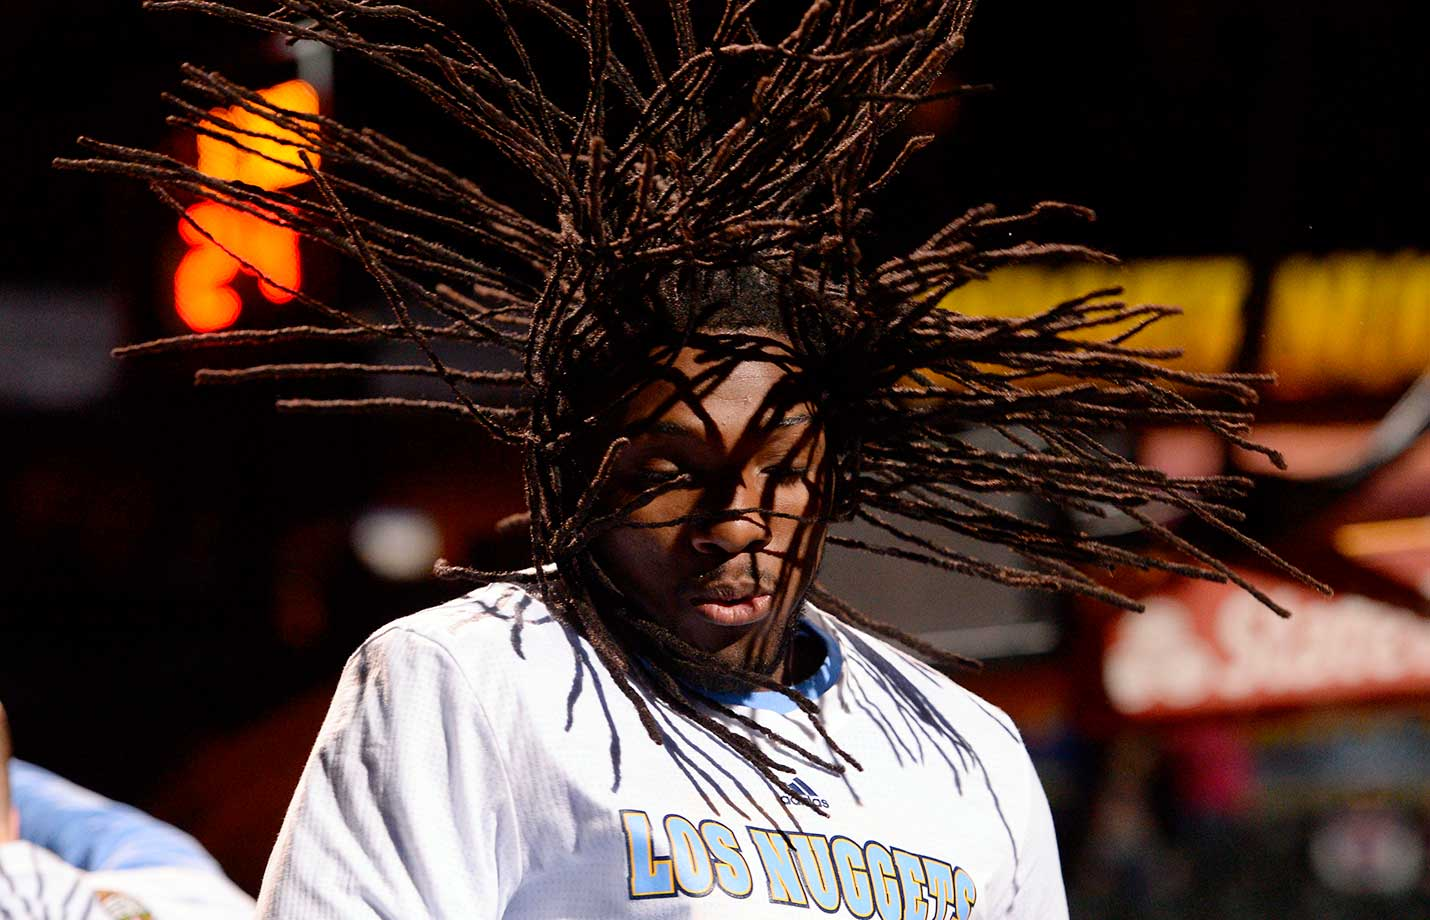 Denver forward Kenneth Faried lets his hair fly during player introductions agains the New York Knicks.